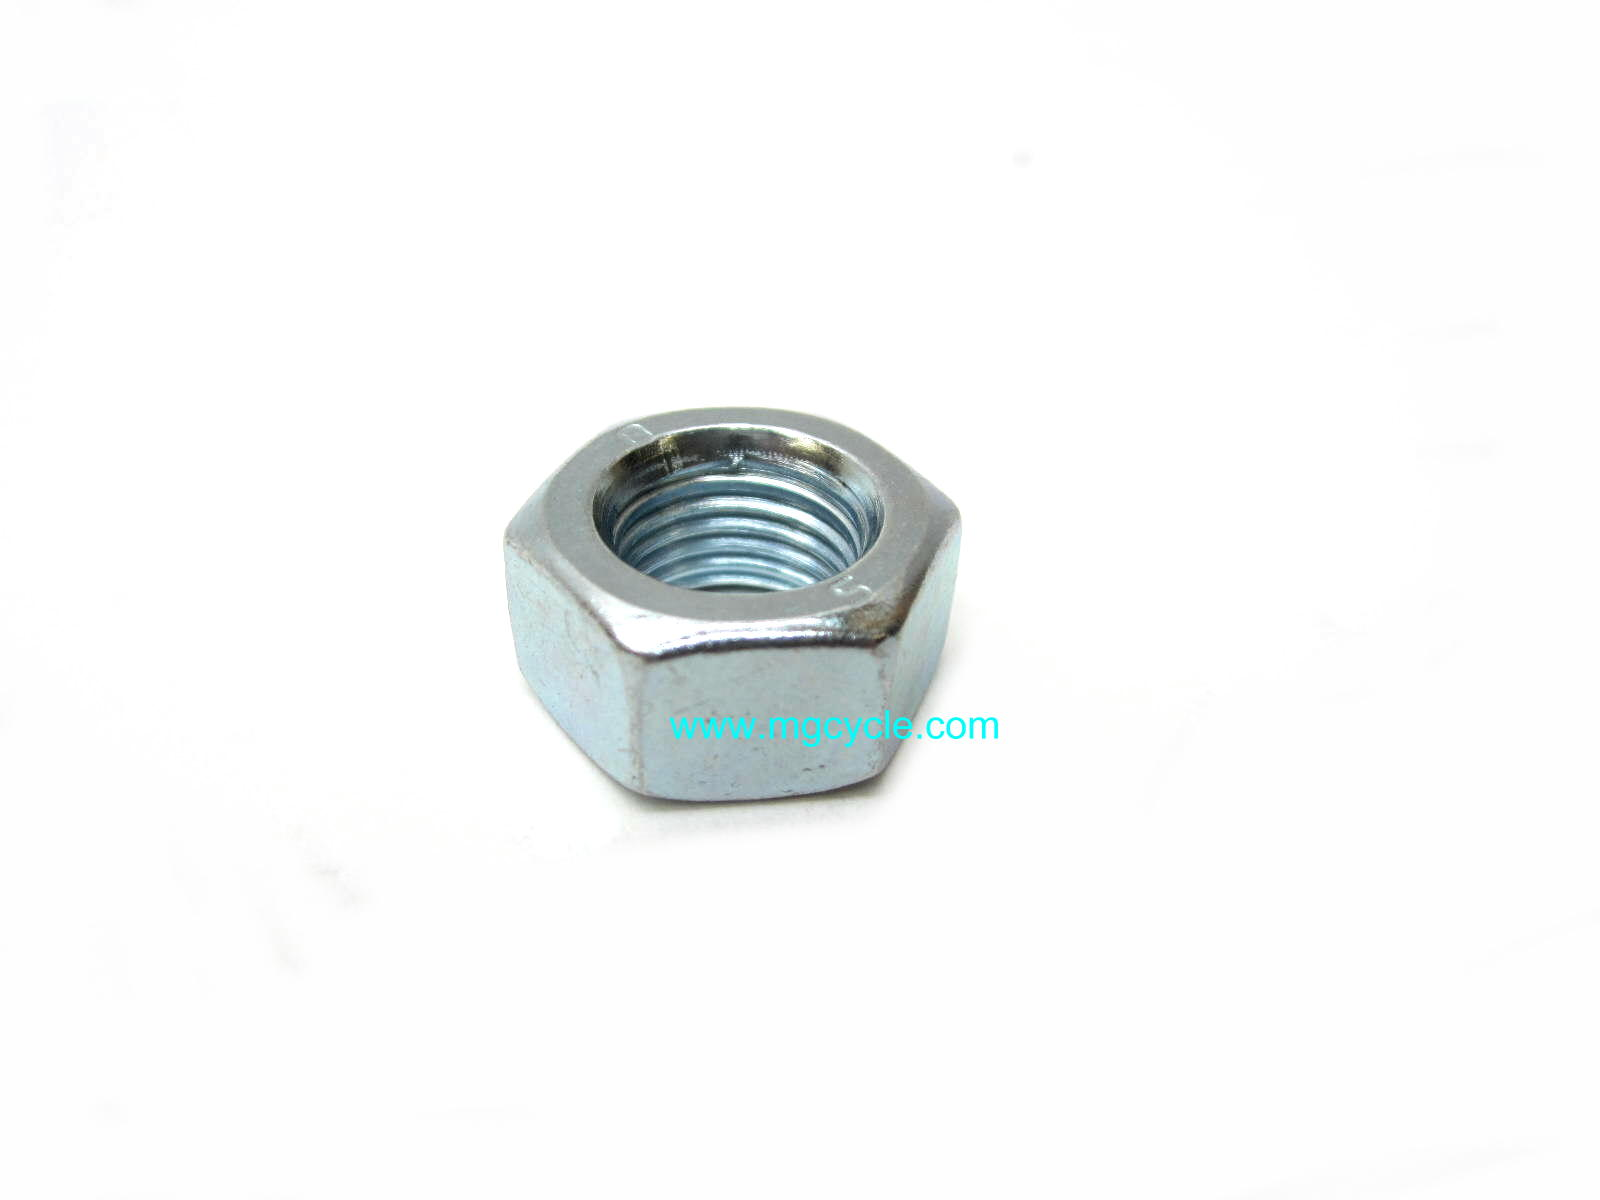 M12 nut, fine thread, frame bolts